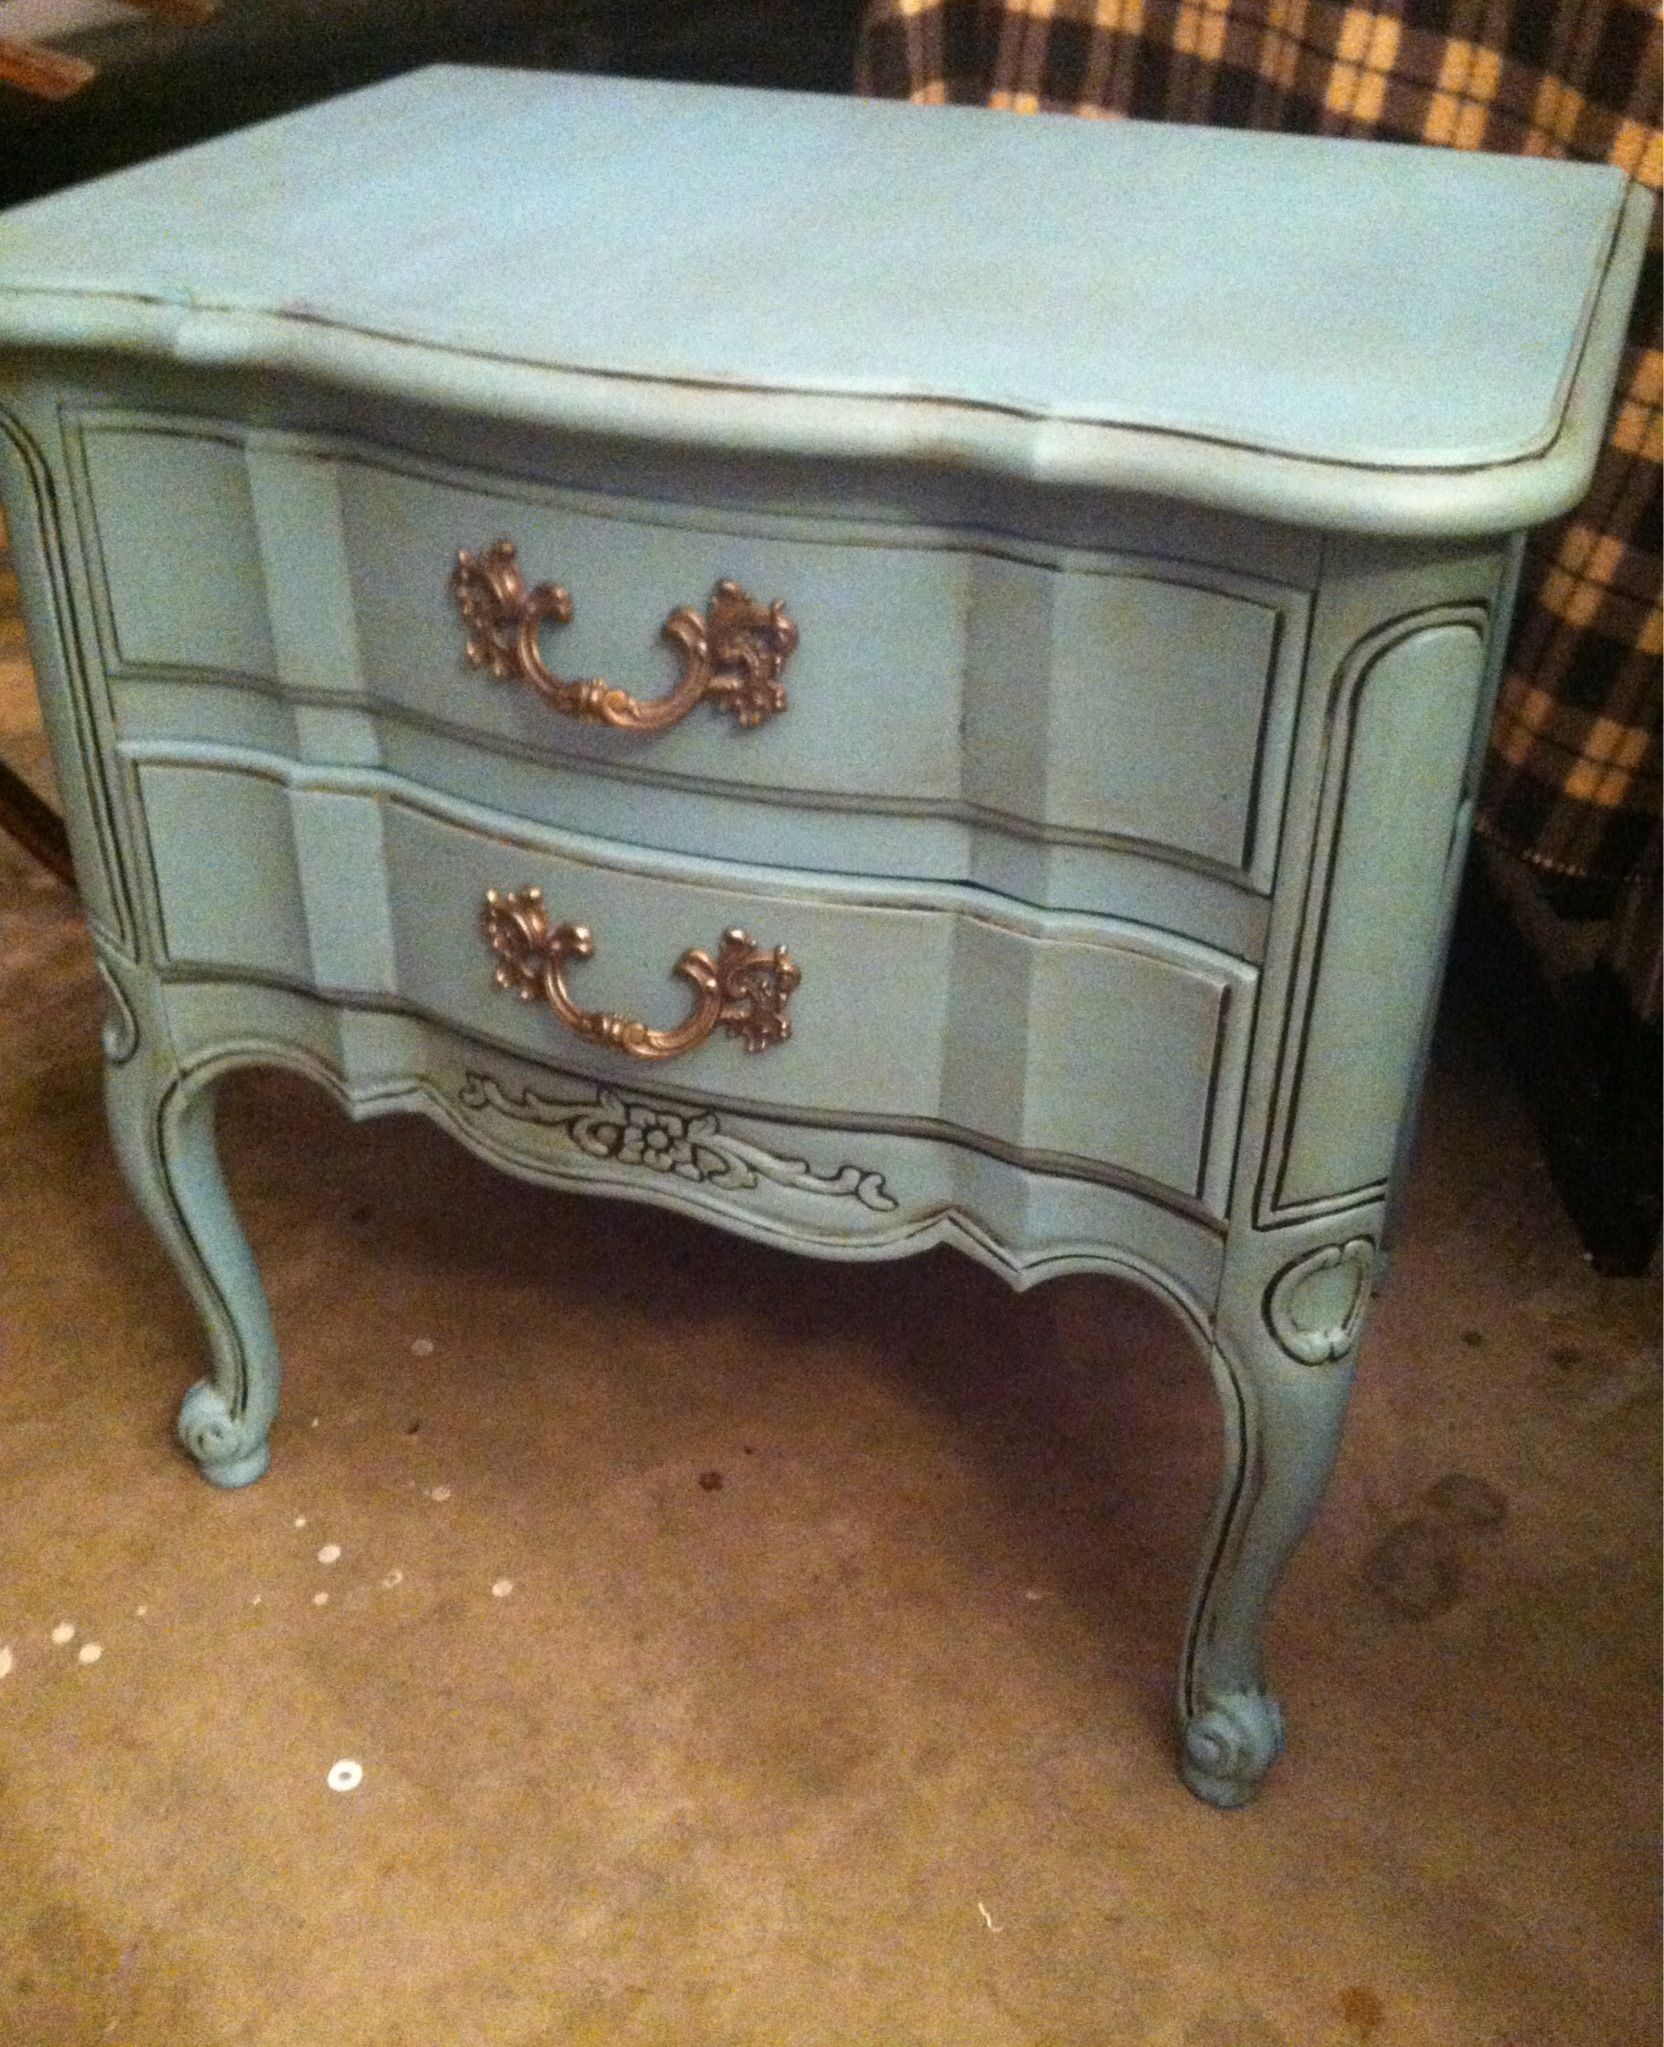 2 Drawer Nightstand Thomasville 1966 Re Finished In Annie Sloan Chalk Paint P Shabby Chic Furniture Annie Sloan Painted Furniture French Painted Furniture